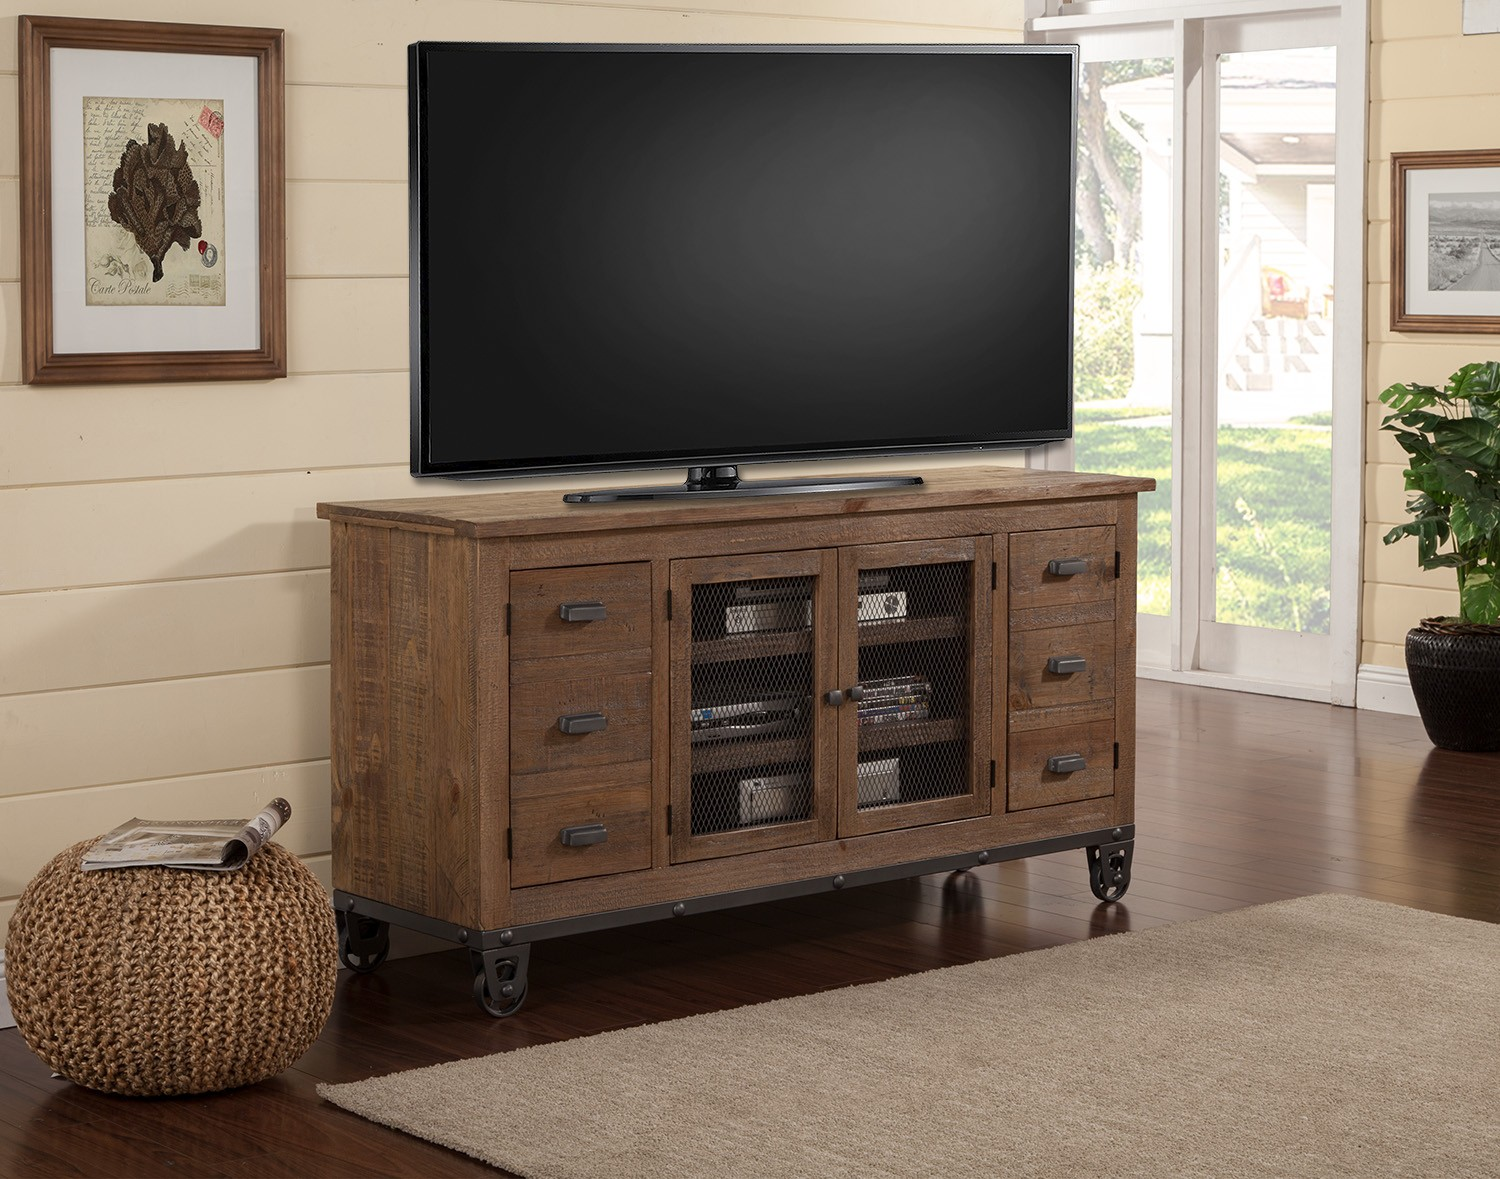 Parker House LaPaz 63-inch Console with wheels - Rustic Worn Pine